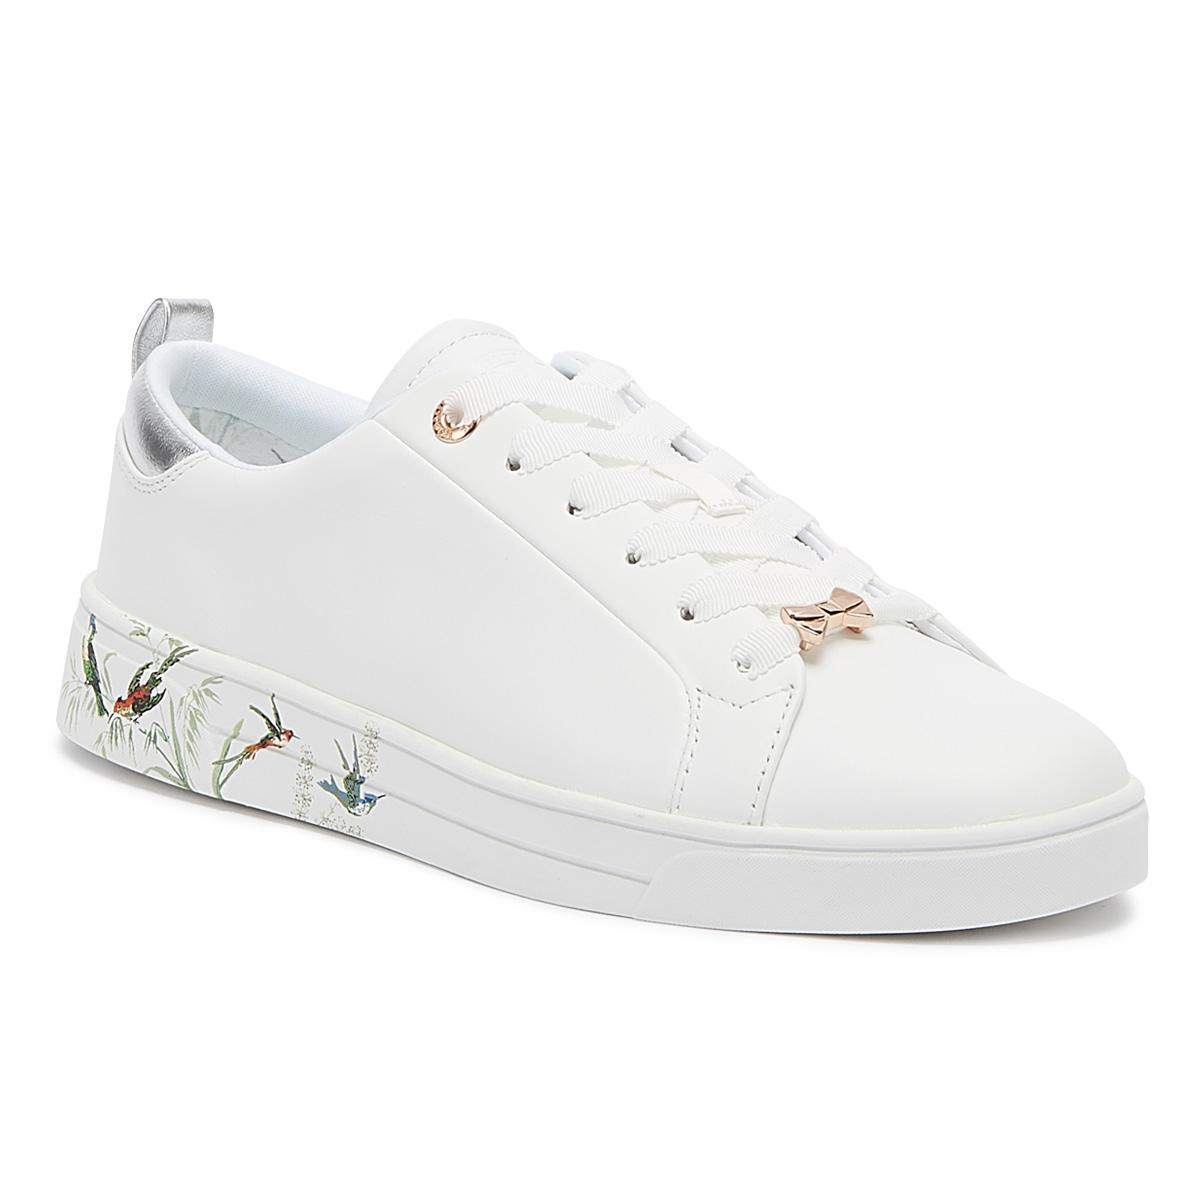 06140b176 Lyst - Ted Baker Roully Womens White Fortune Leather Trainers in ...